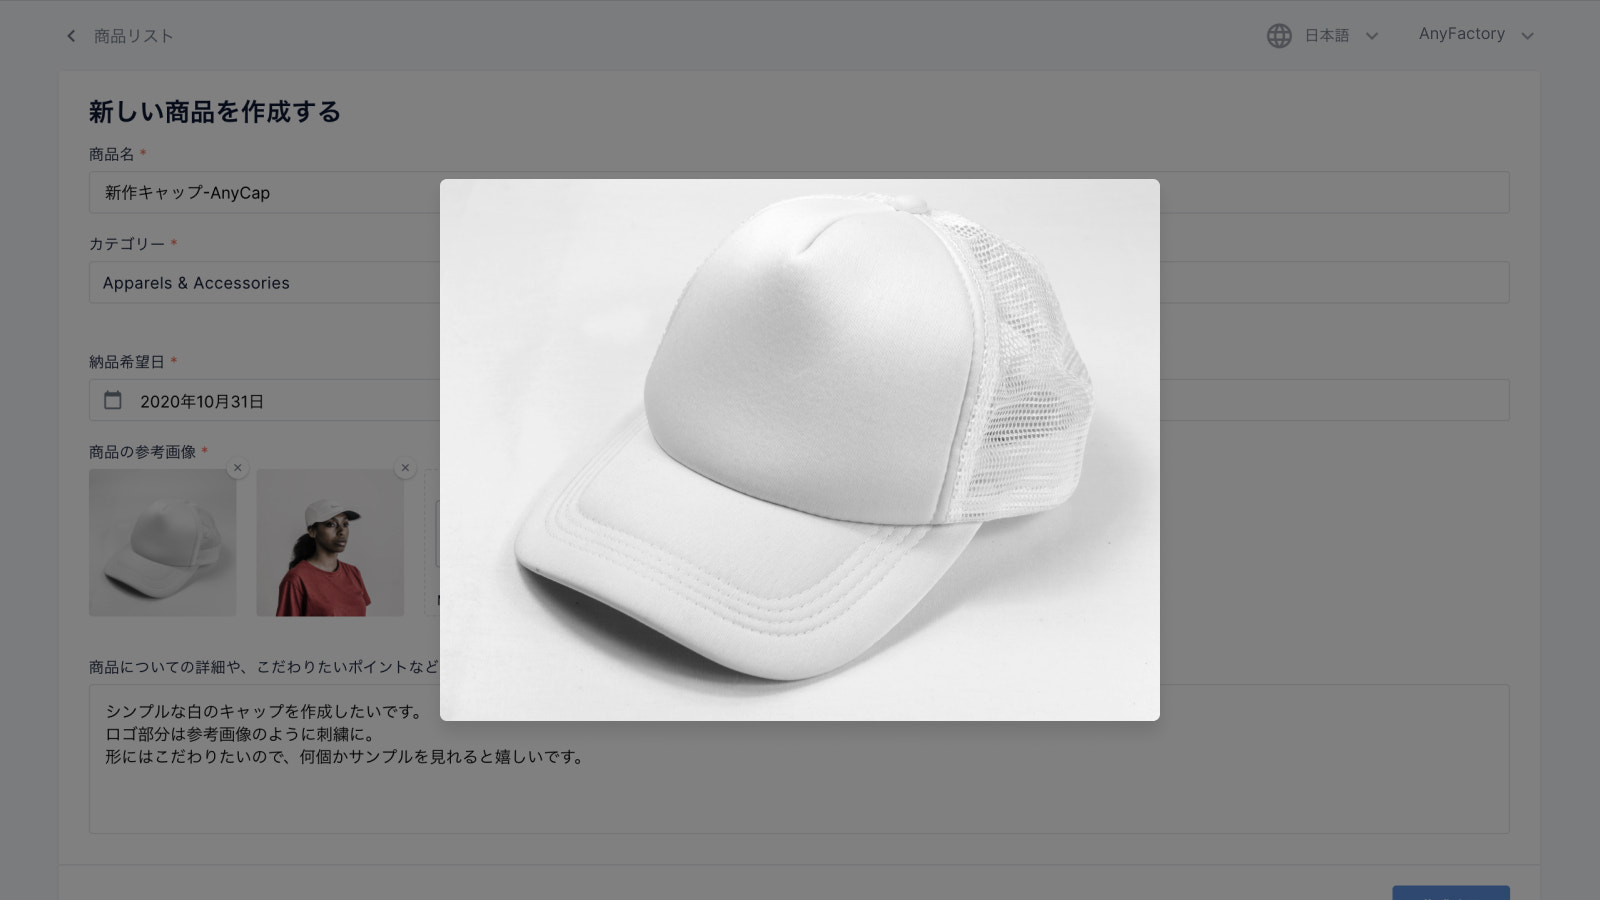 Check the product image